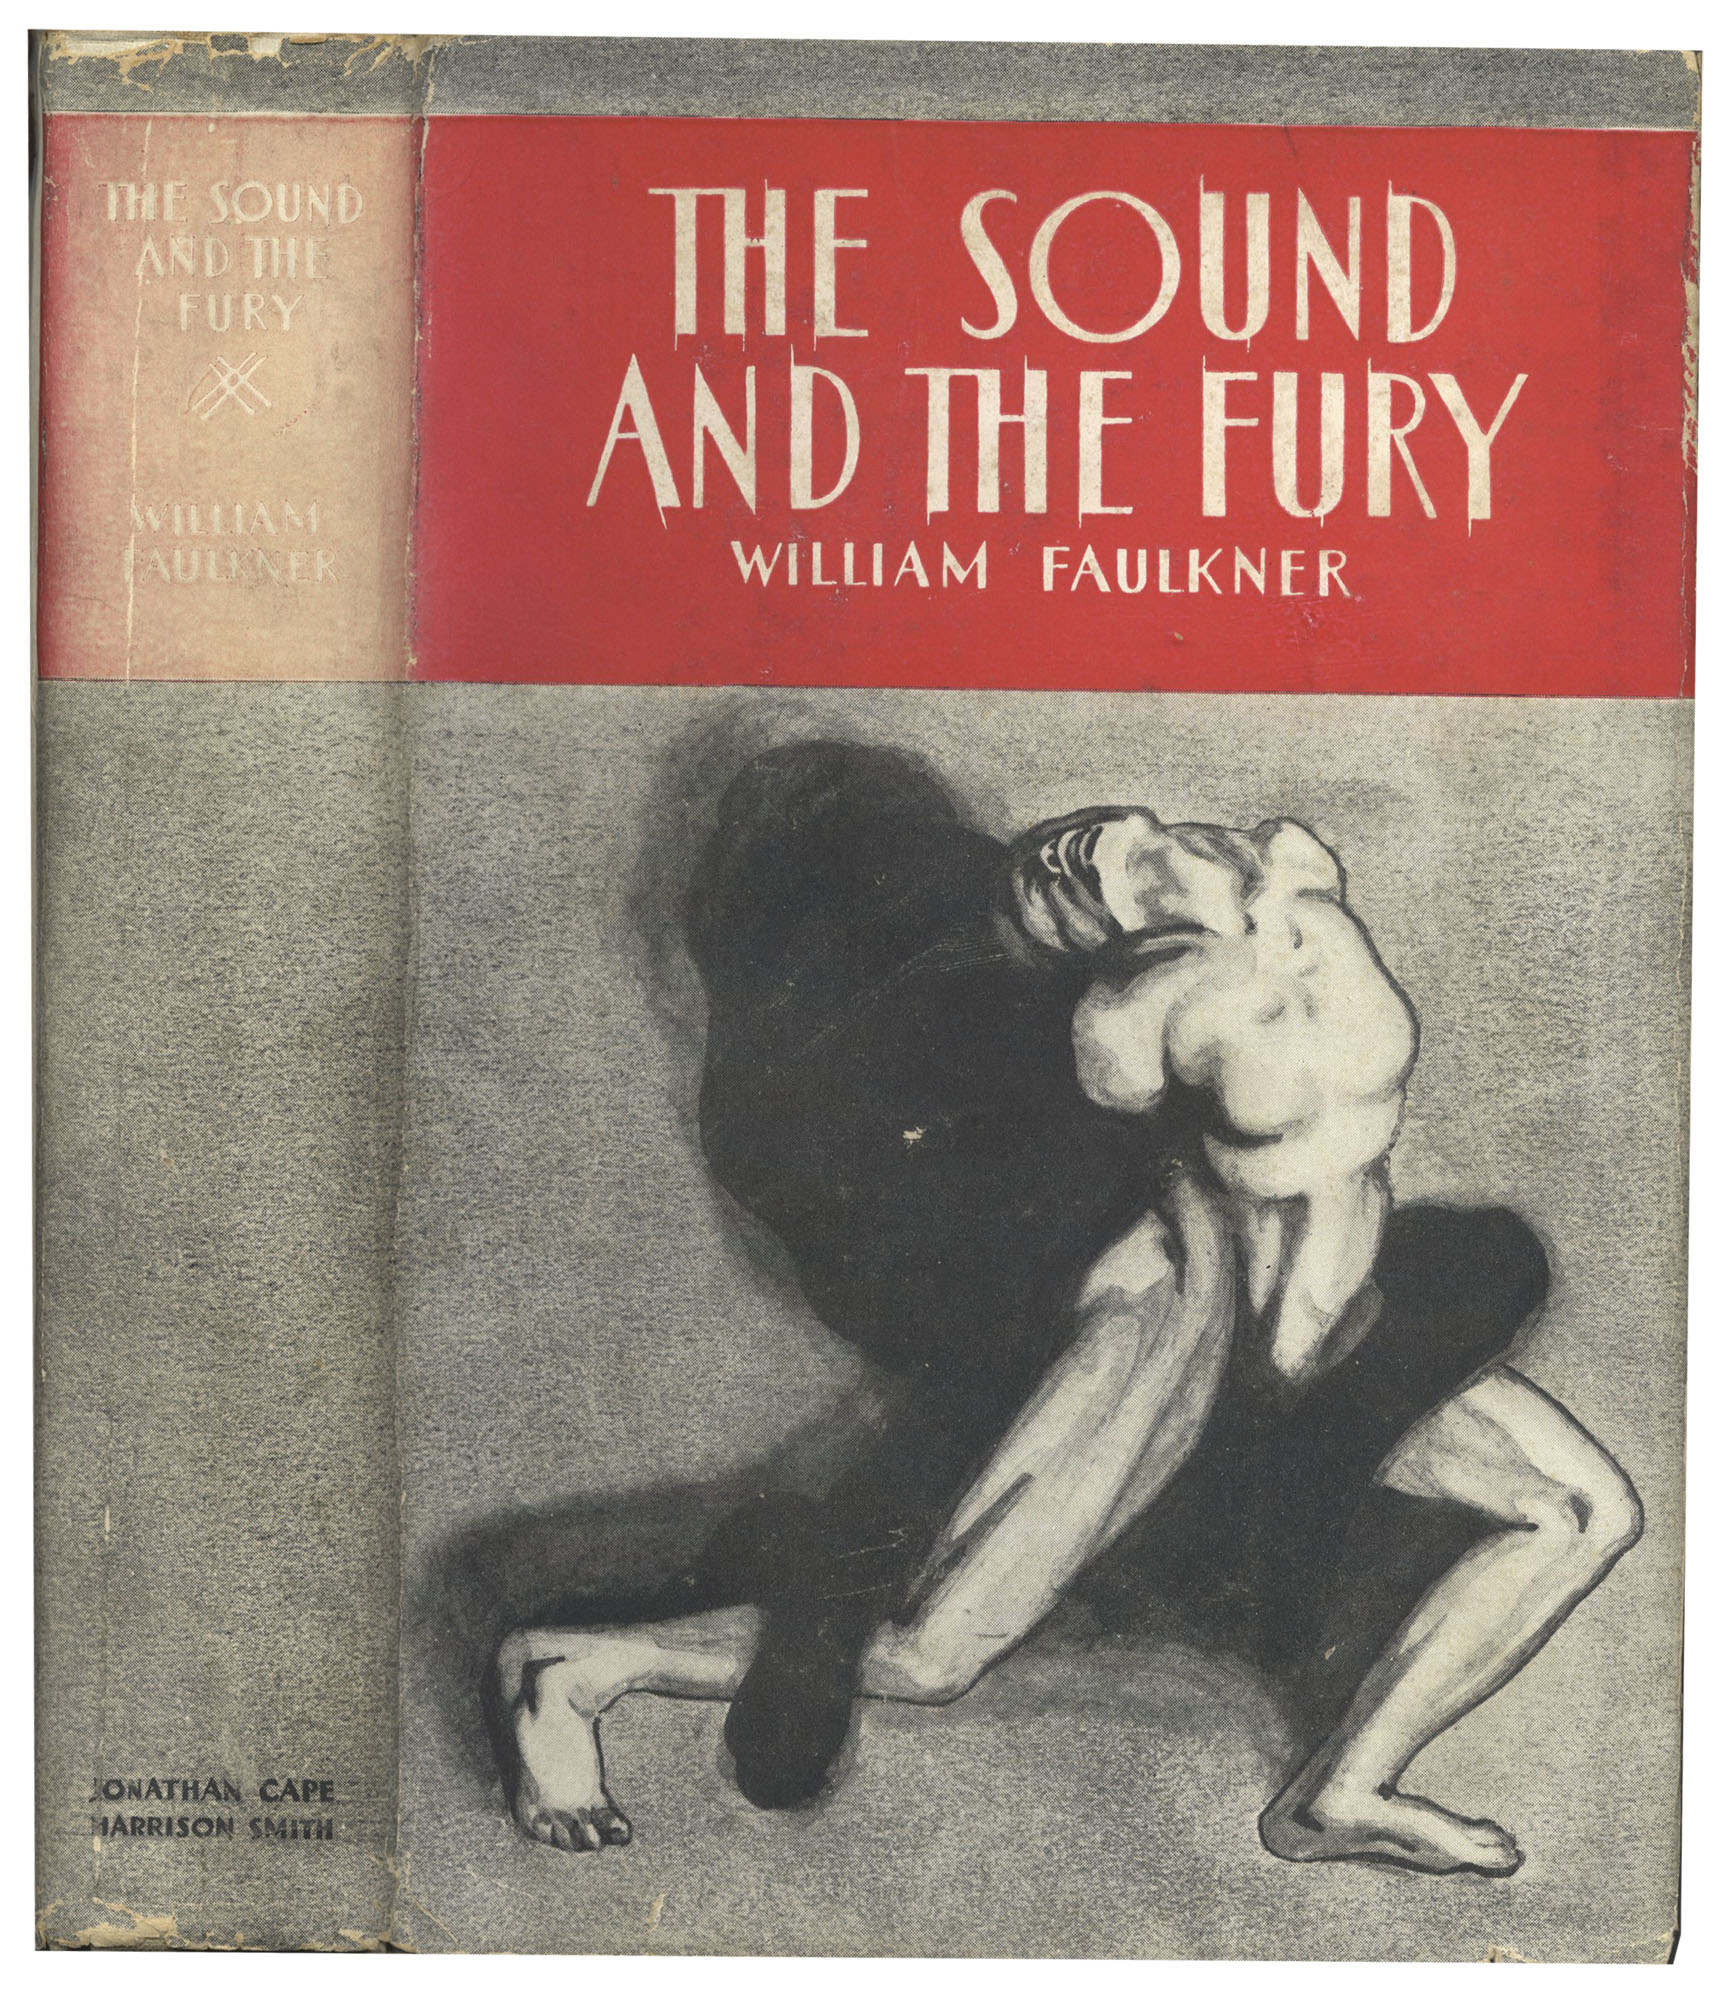 loss of innocence in the sound and the fury by william faulkner Posts about the sound and the fury written by christophertevuk skip to content the others are realist novels about loneliness, grief and loss.